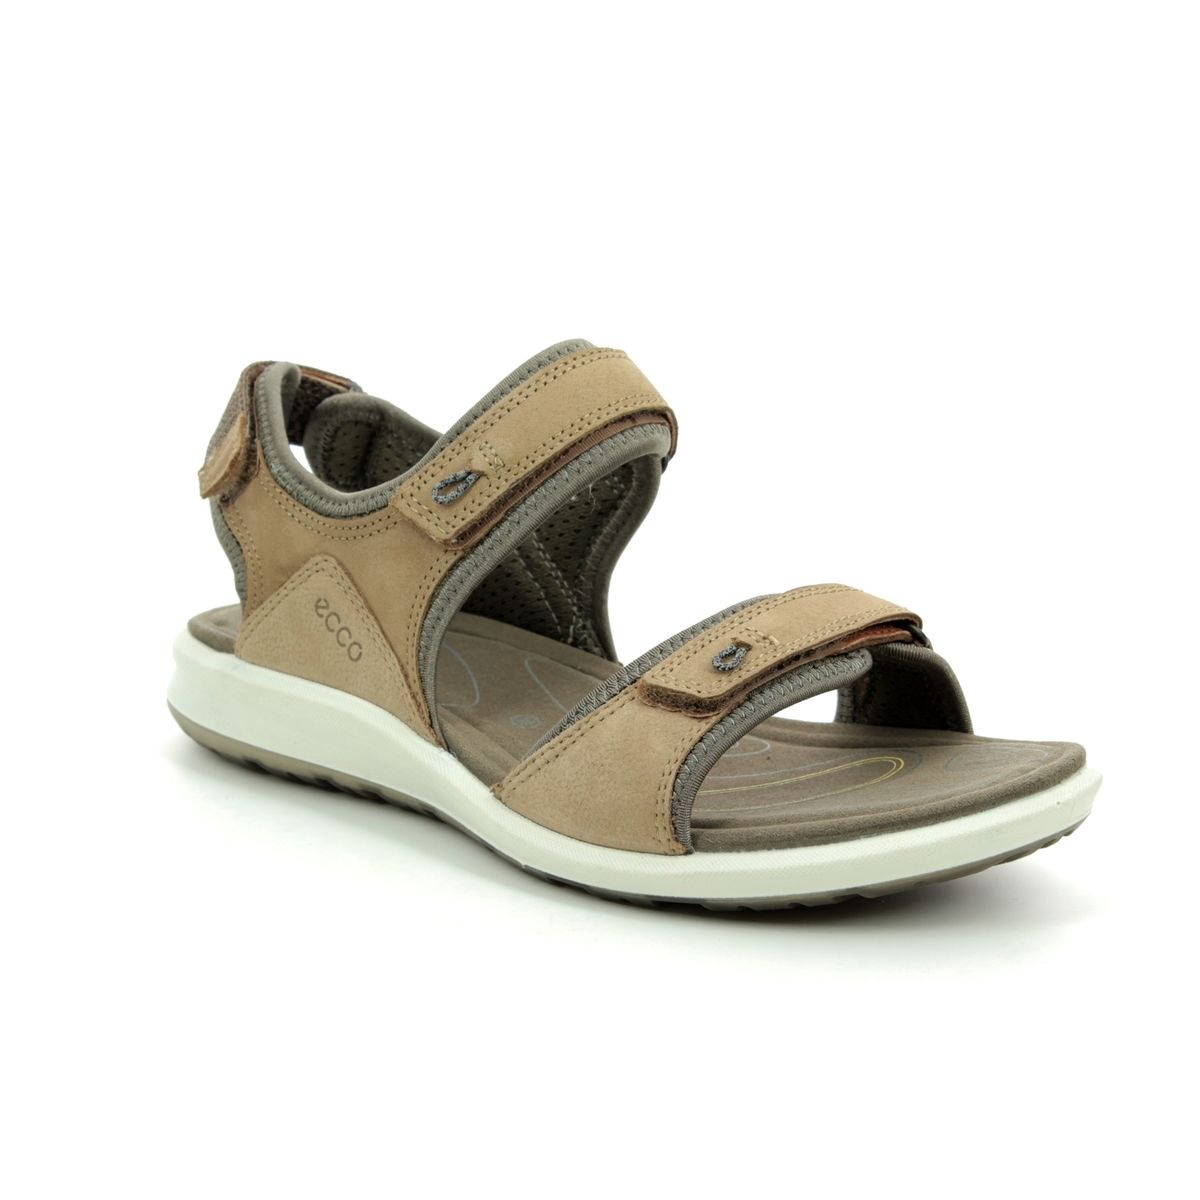 9fa8c25328 ECCO Walking Sandals - Tan Leather - 821863/50190 CRUISE II STRAP